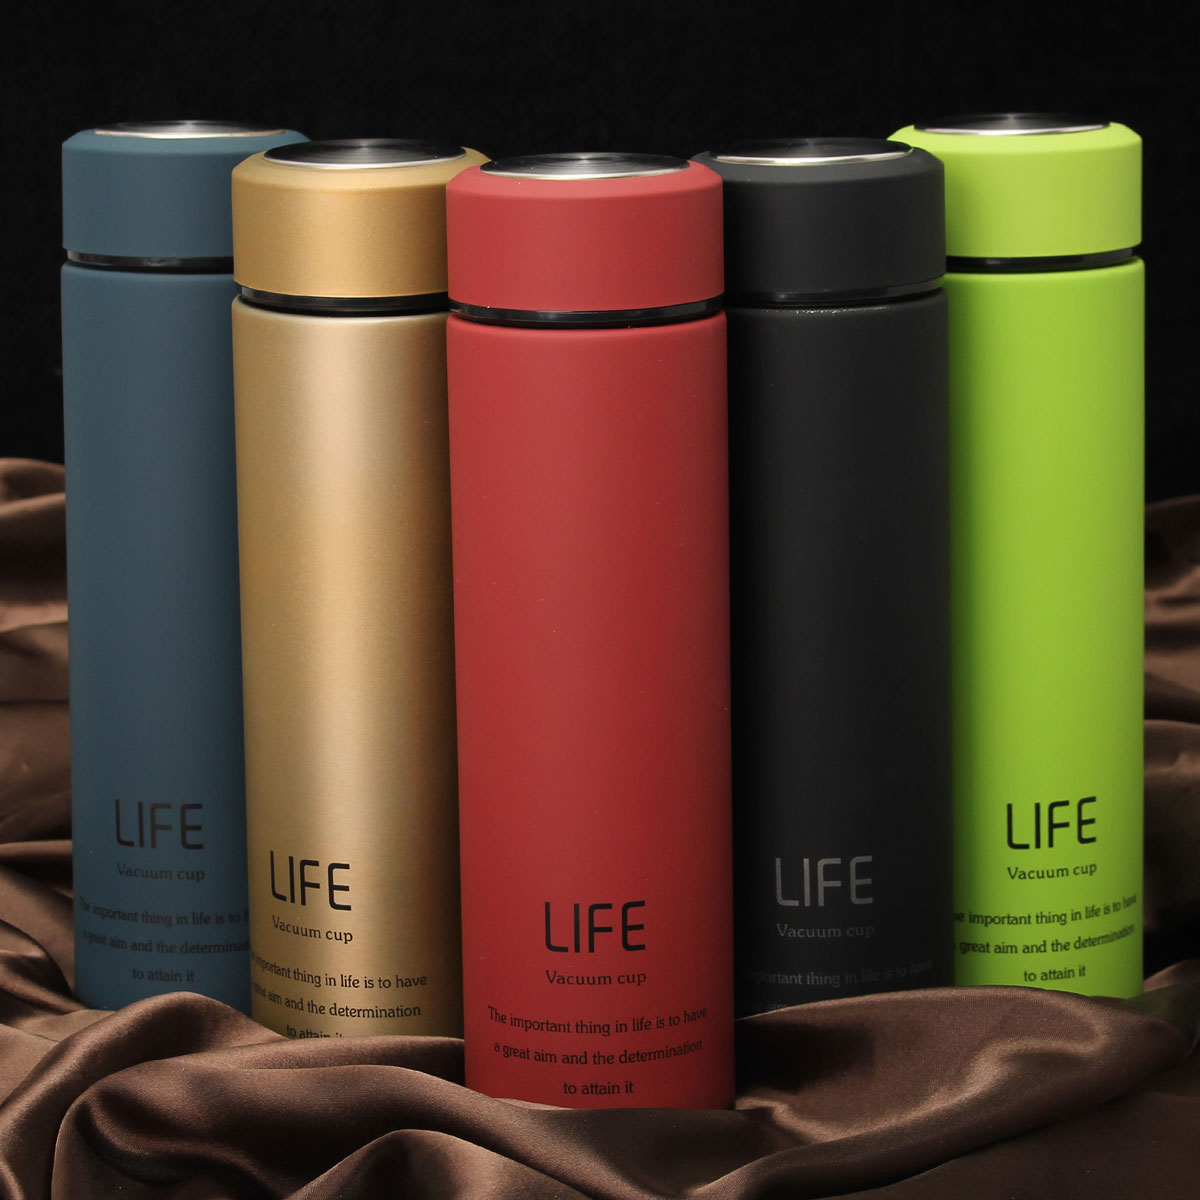 500ML/18Oz Portable Stainless Steel Vacuum-Insulated Thermos leak-proof Insulated Container Coffee Tea Beverage Bottle Flasks Travel Mug 5 Colors